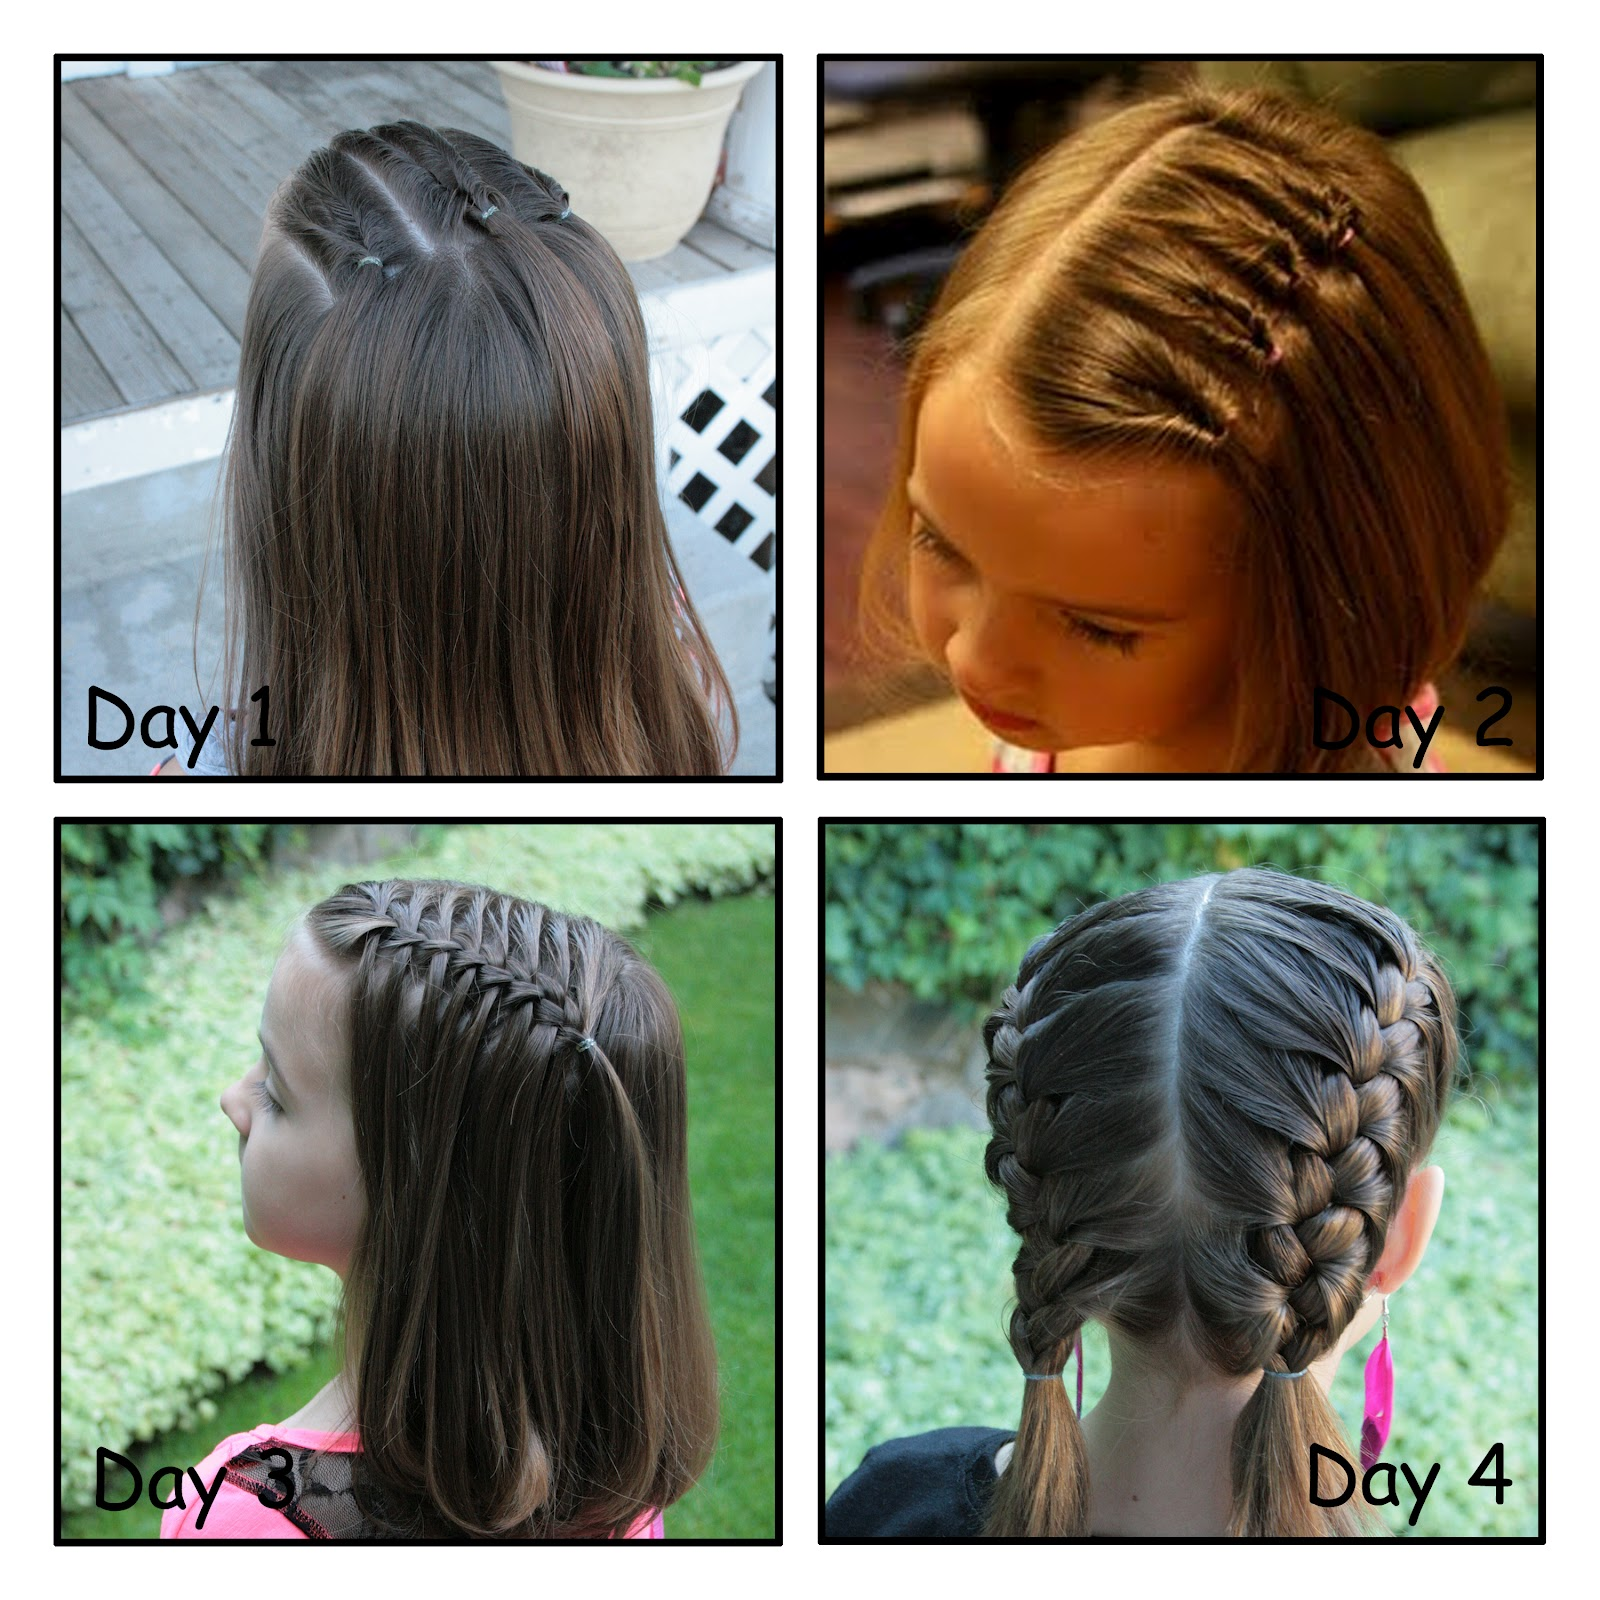 Hairstyles For Short Hair Easy For School : Girly Do Hairstyles: By Jenn: Back to School